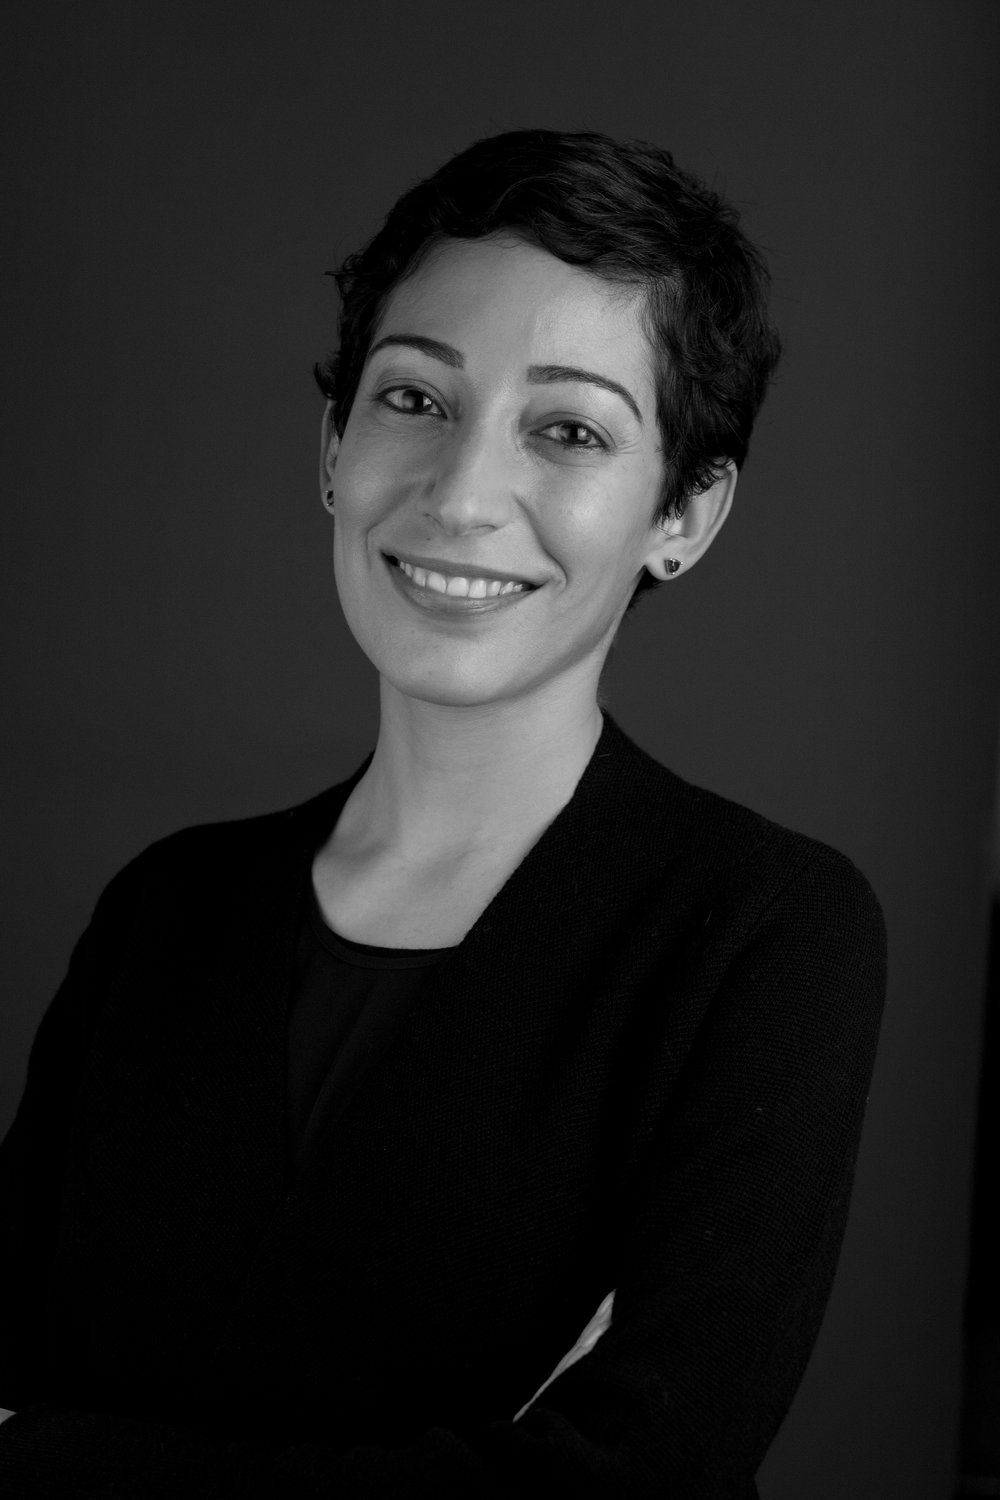 May Aldabbagh NYU picture.jpg